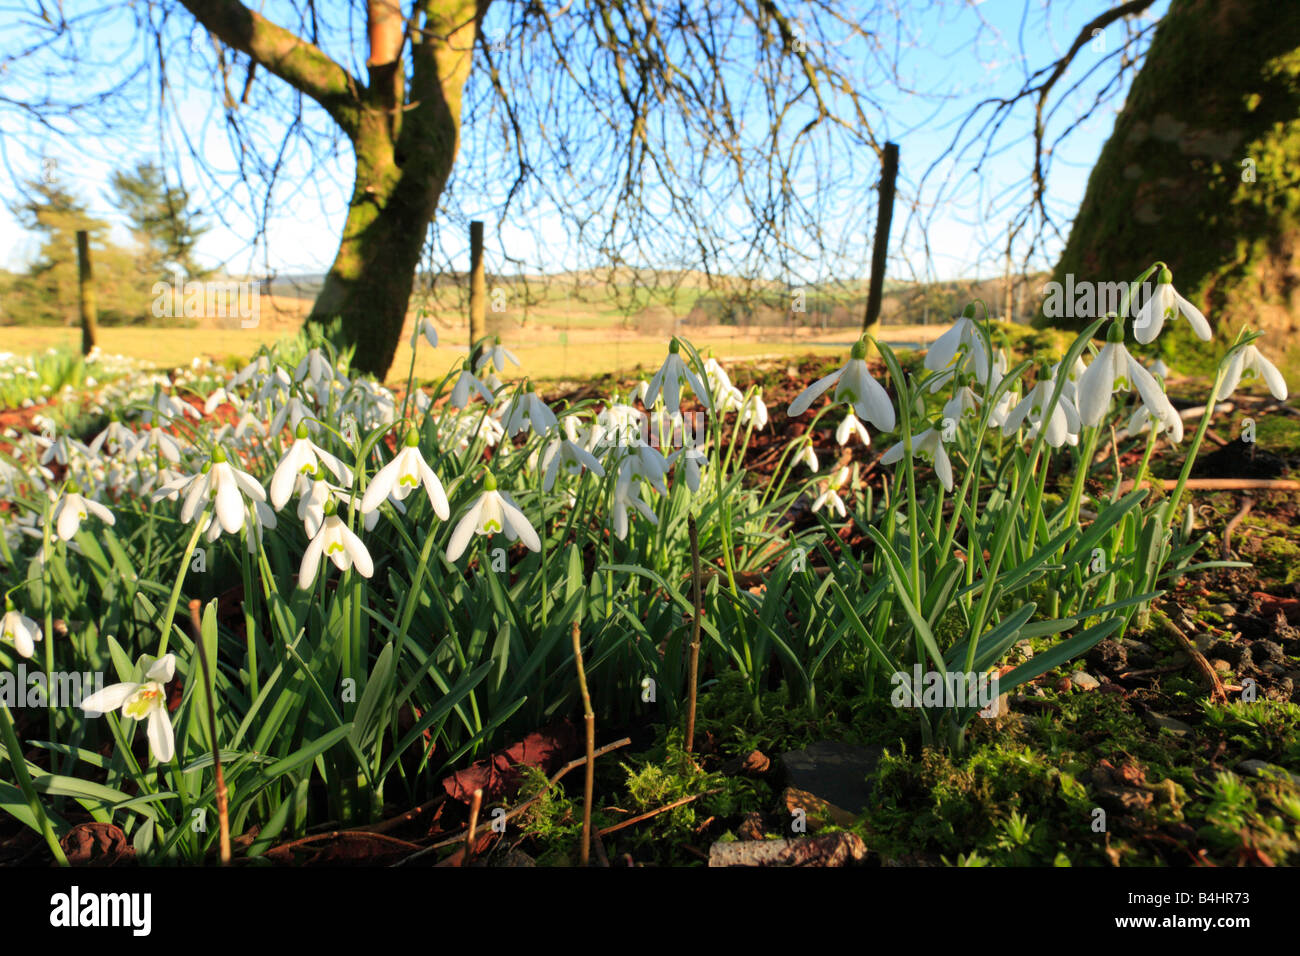 Naturalized Snowdrops (Galanthus nivalis) flowering in the garden of an abandoned house. Powys, Wales, UK. - Stock Image